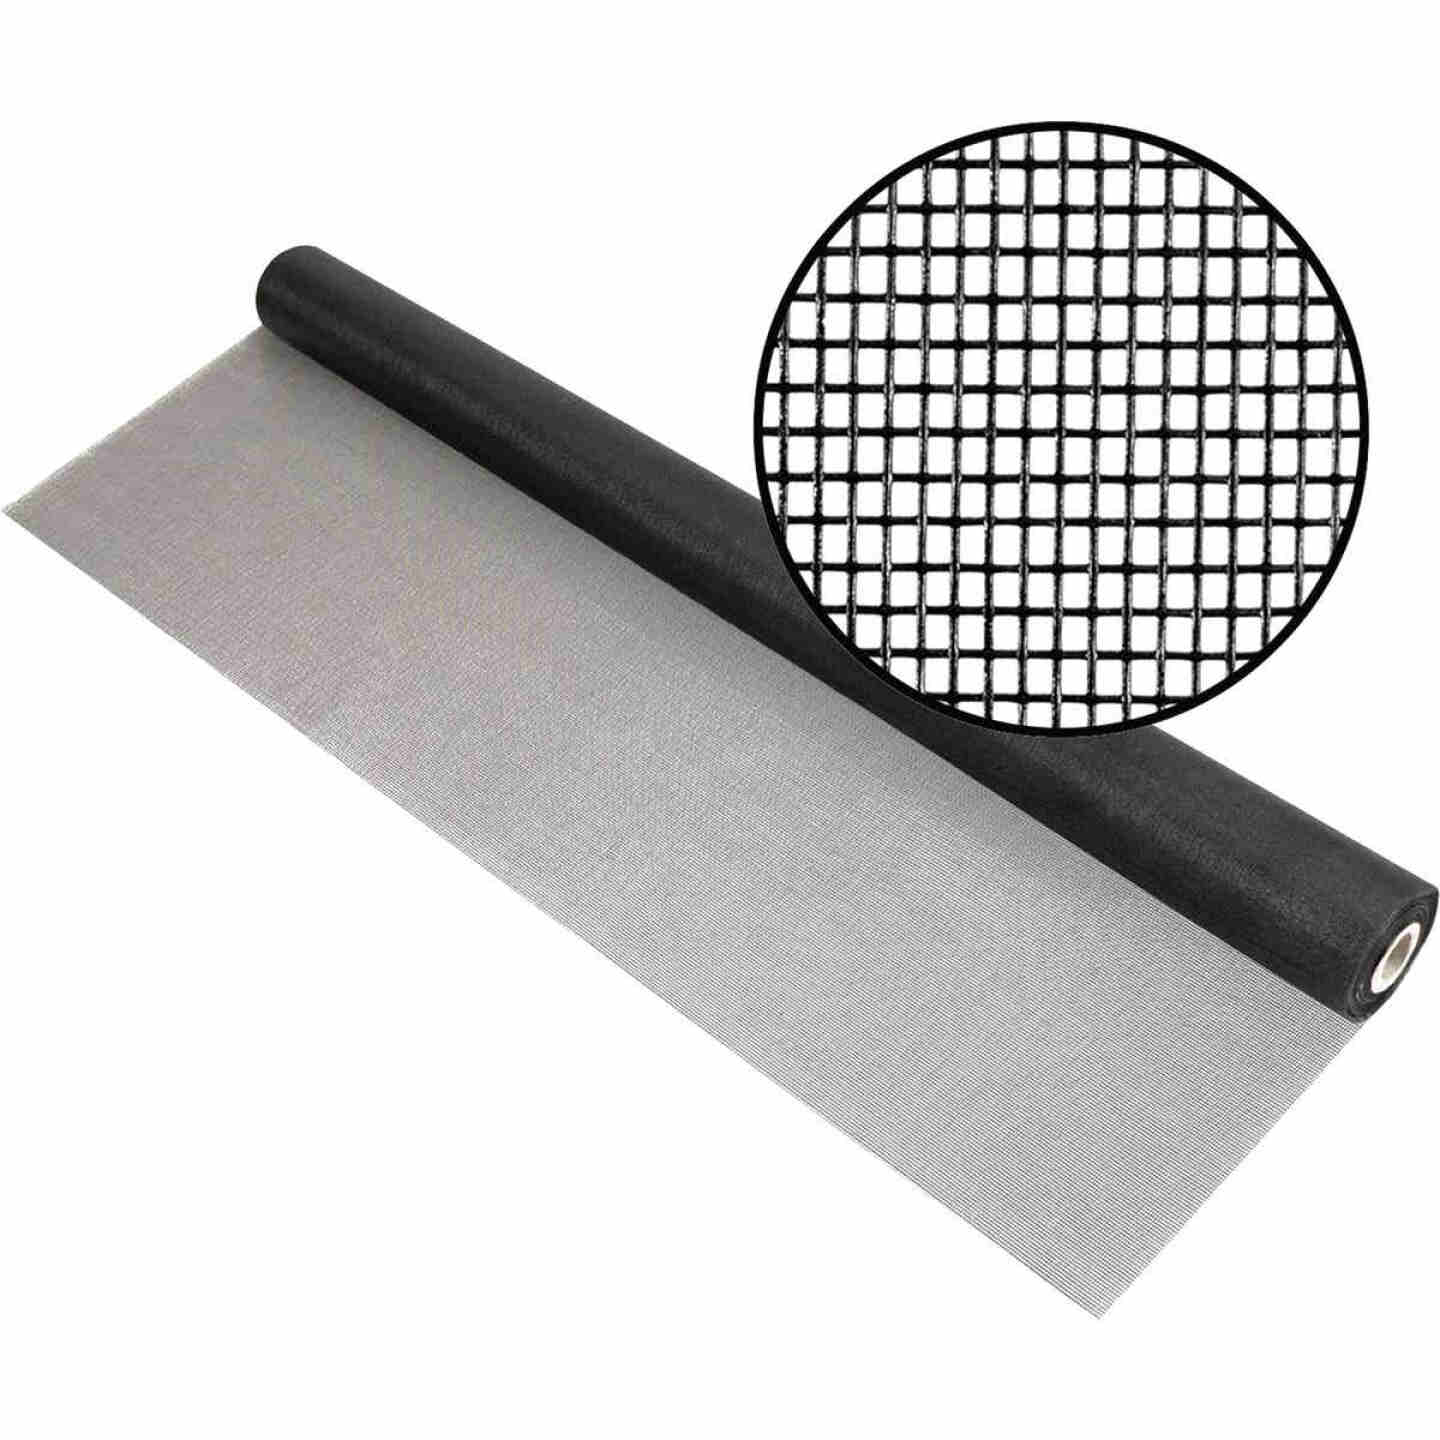 Phifer 36 In. x 100 Ft. Charcoal Fiberglass Mesh Screen Cloth Image 1